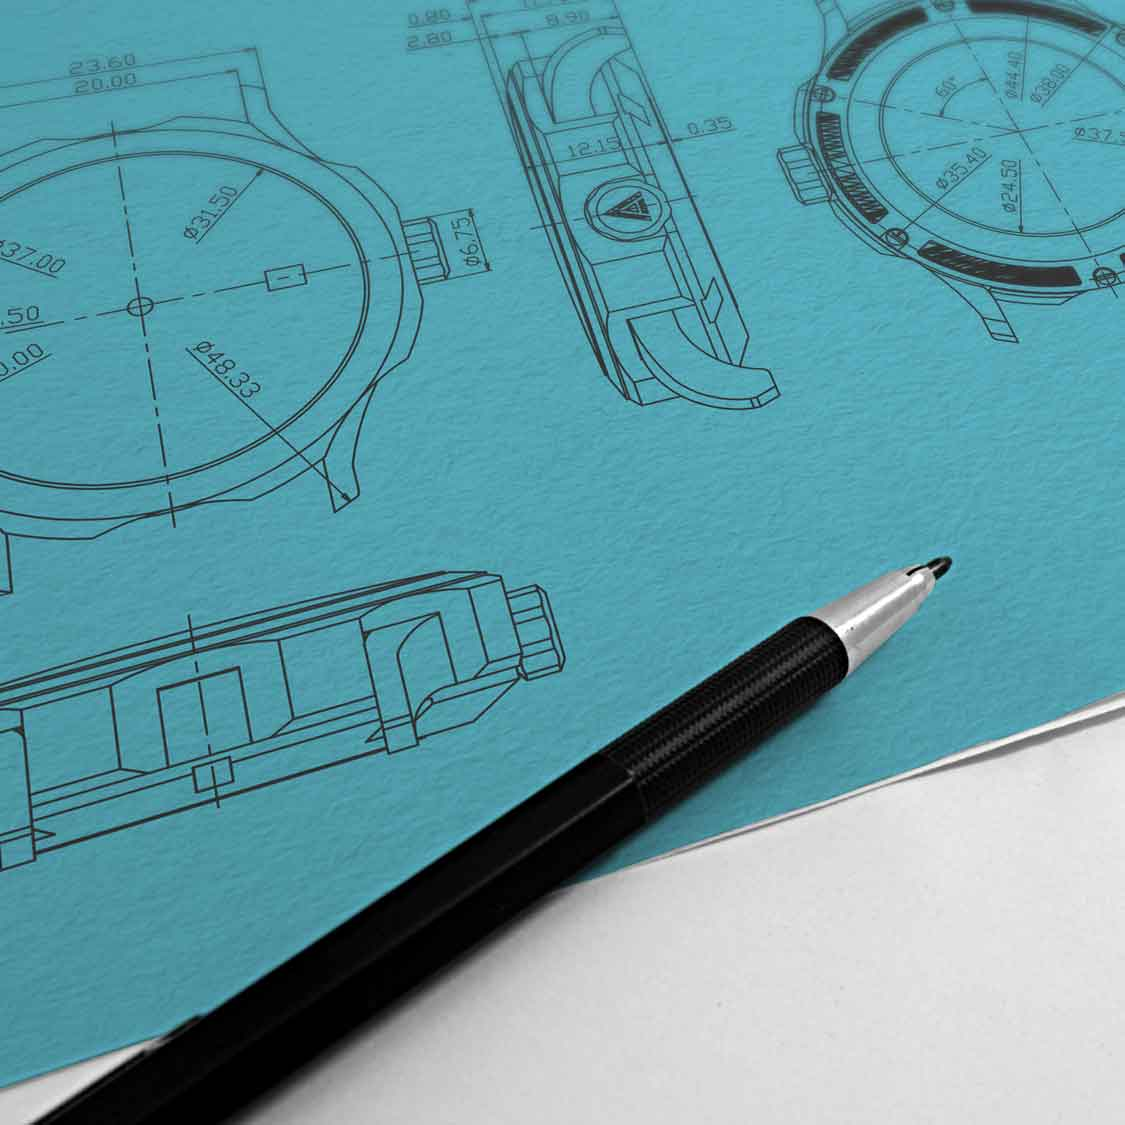 watch designers essex author studios technical drawings blue